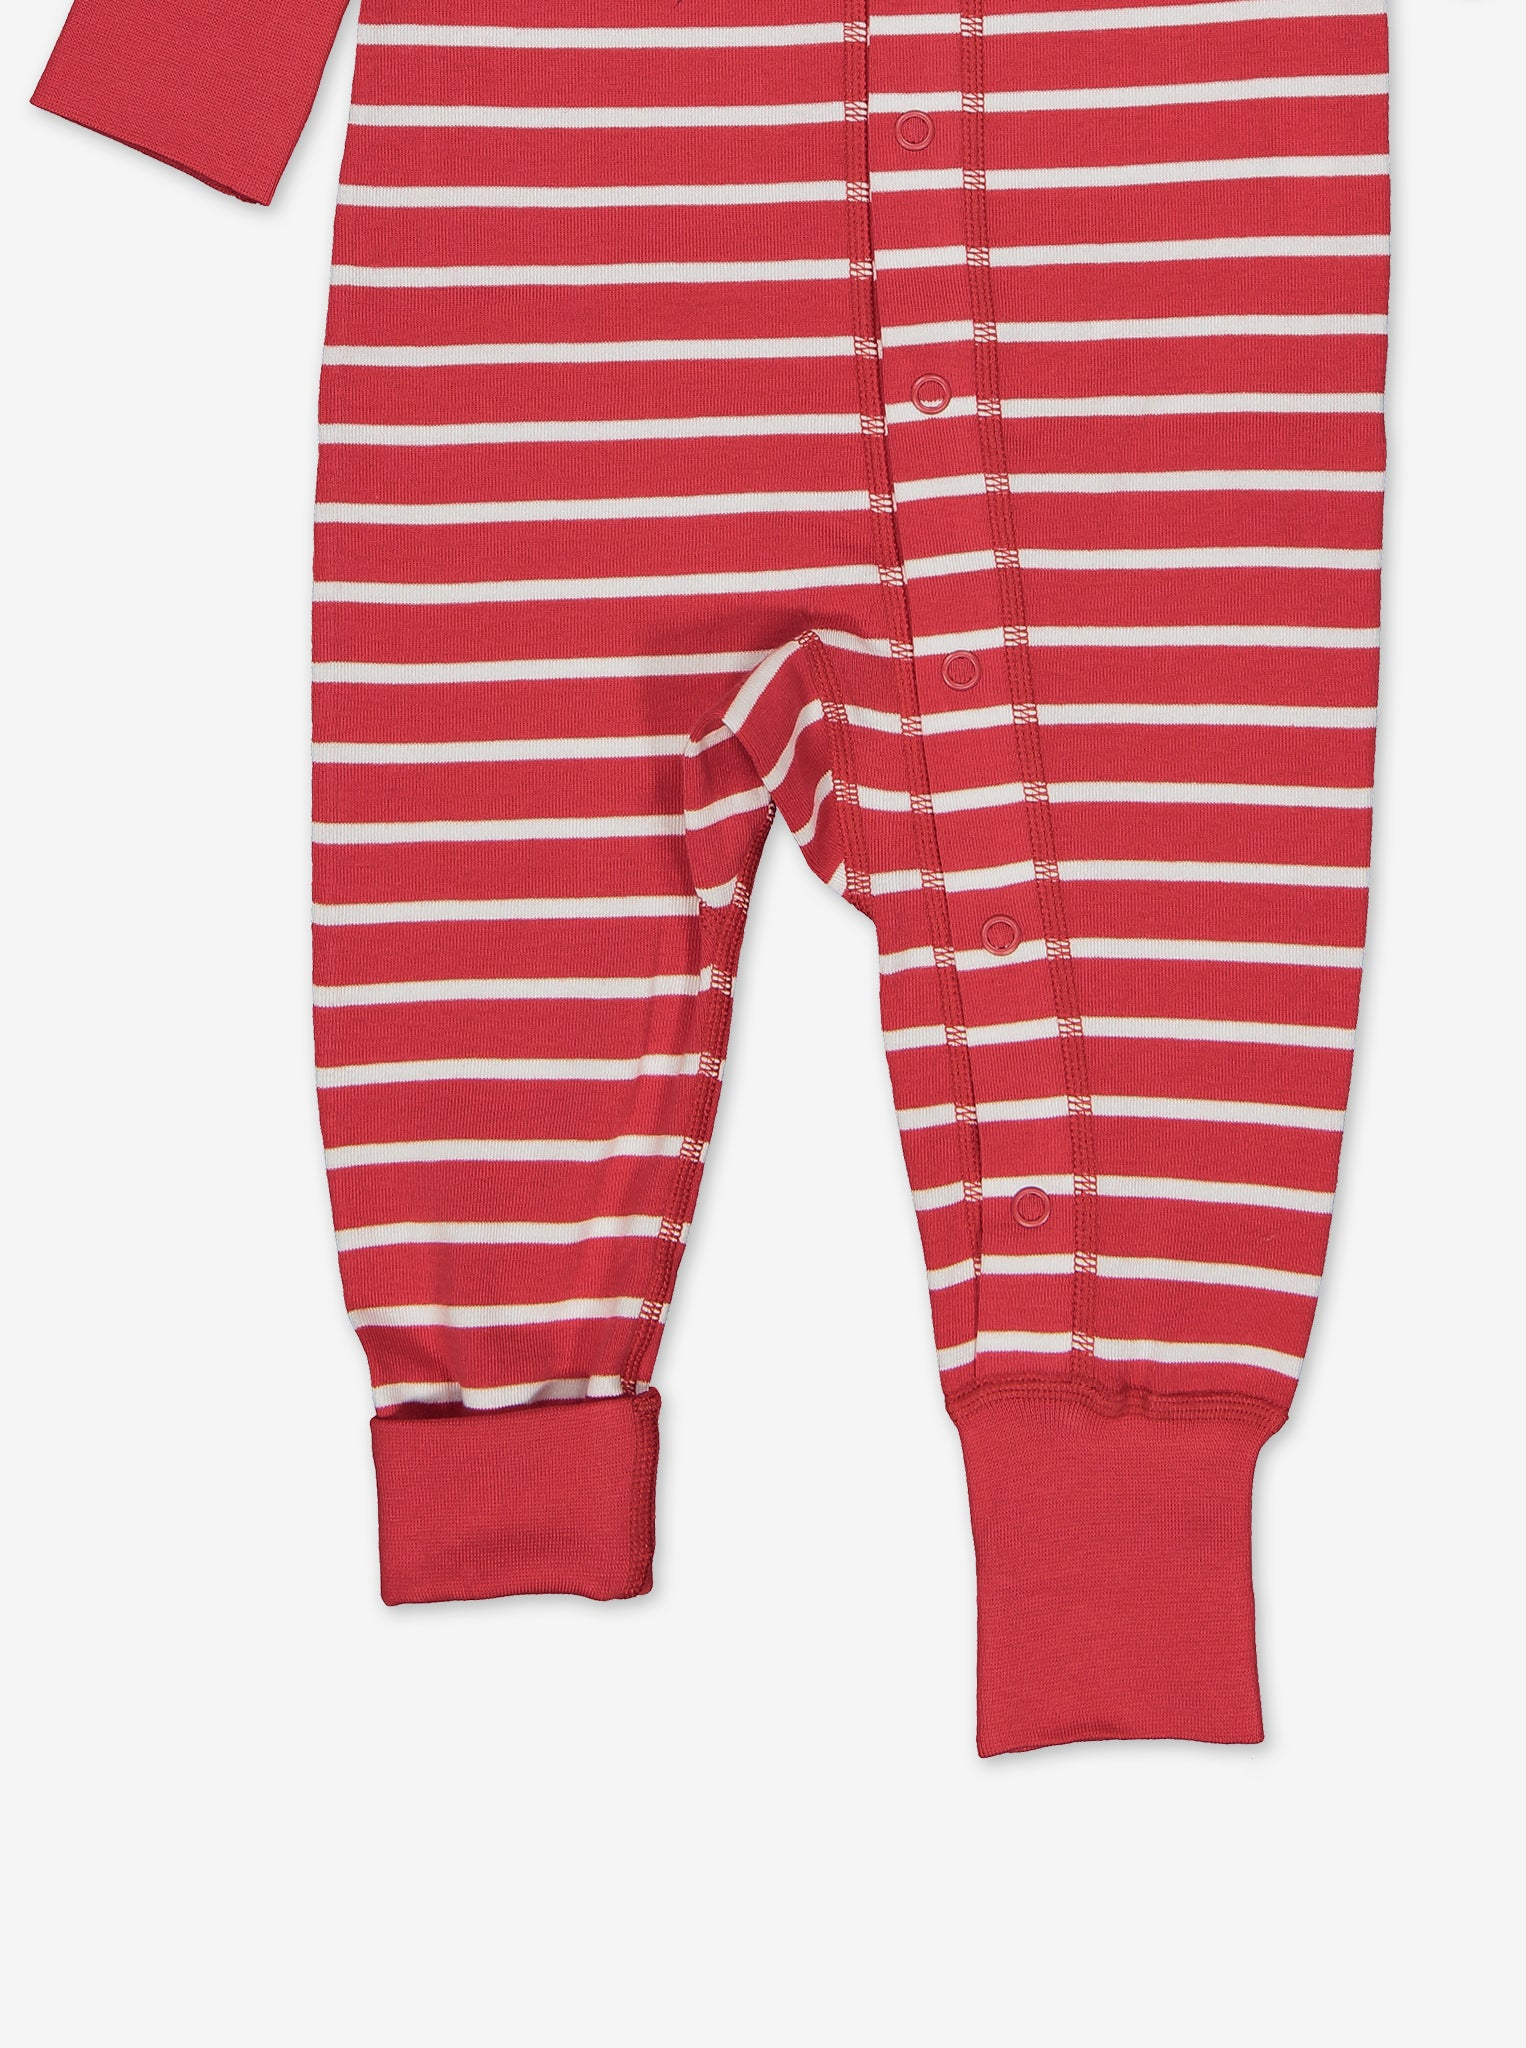 Leg area of the red and white stripe print baby all-in-one, showing the left leg cuffs folded and the right cuff unfolded.